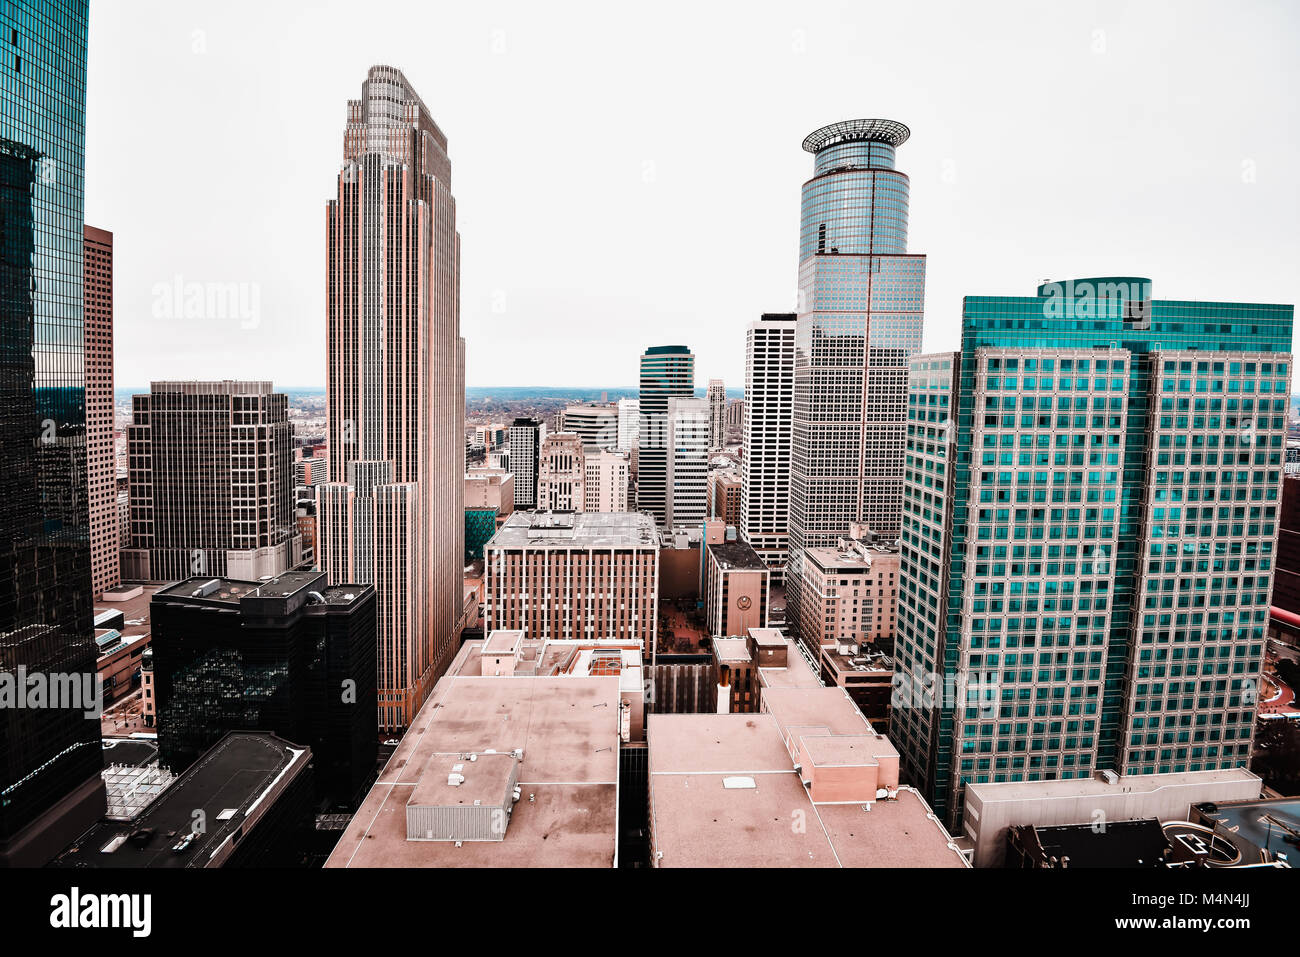 The view of downtown from the Foshay Building in Minneapolis Minnesota - Stock Image